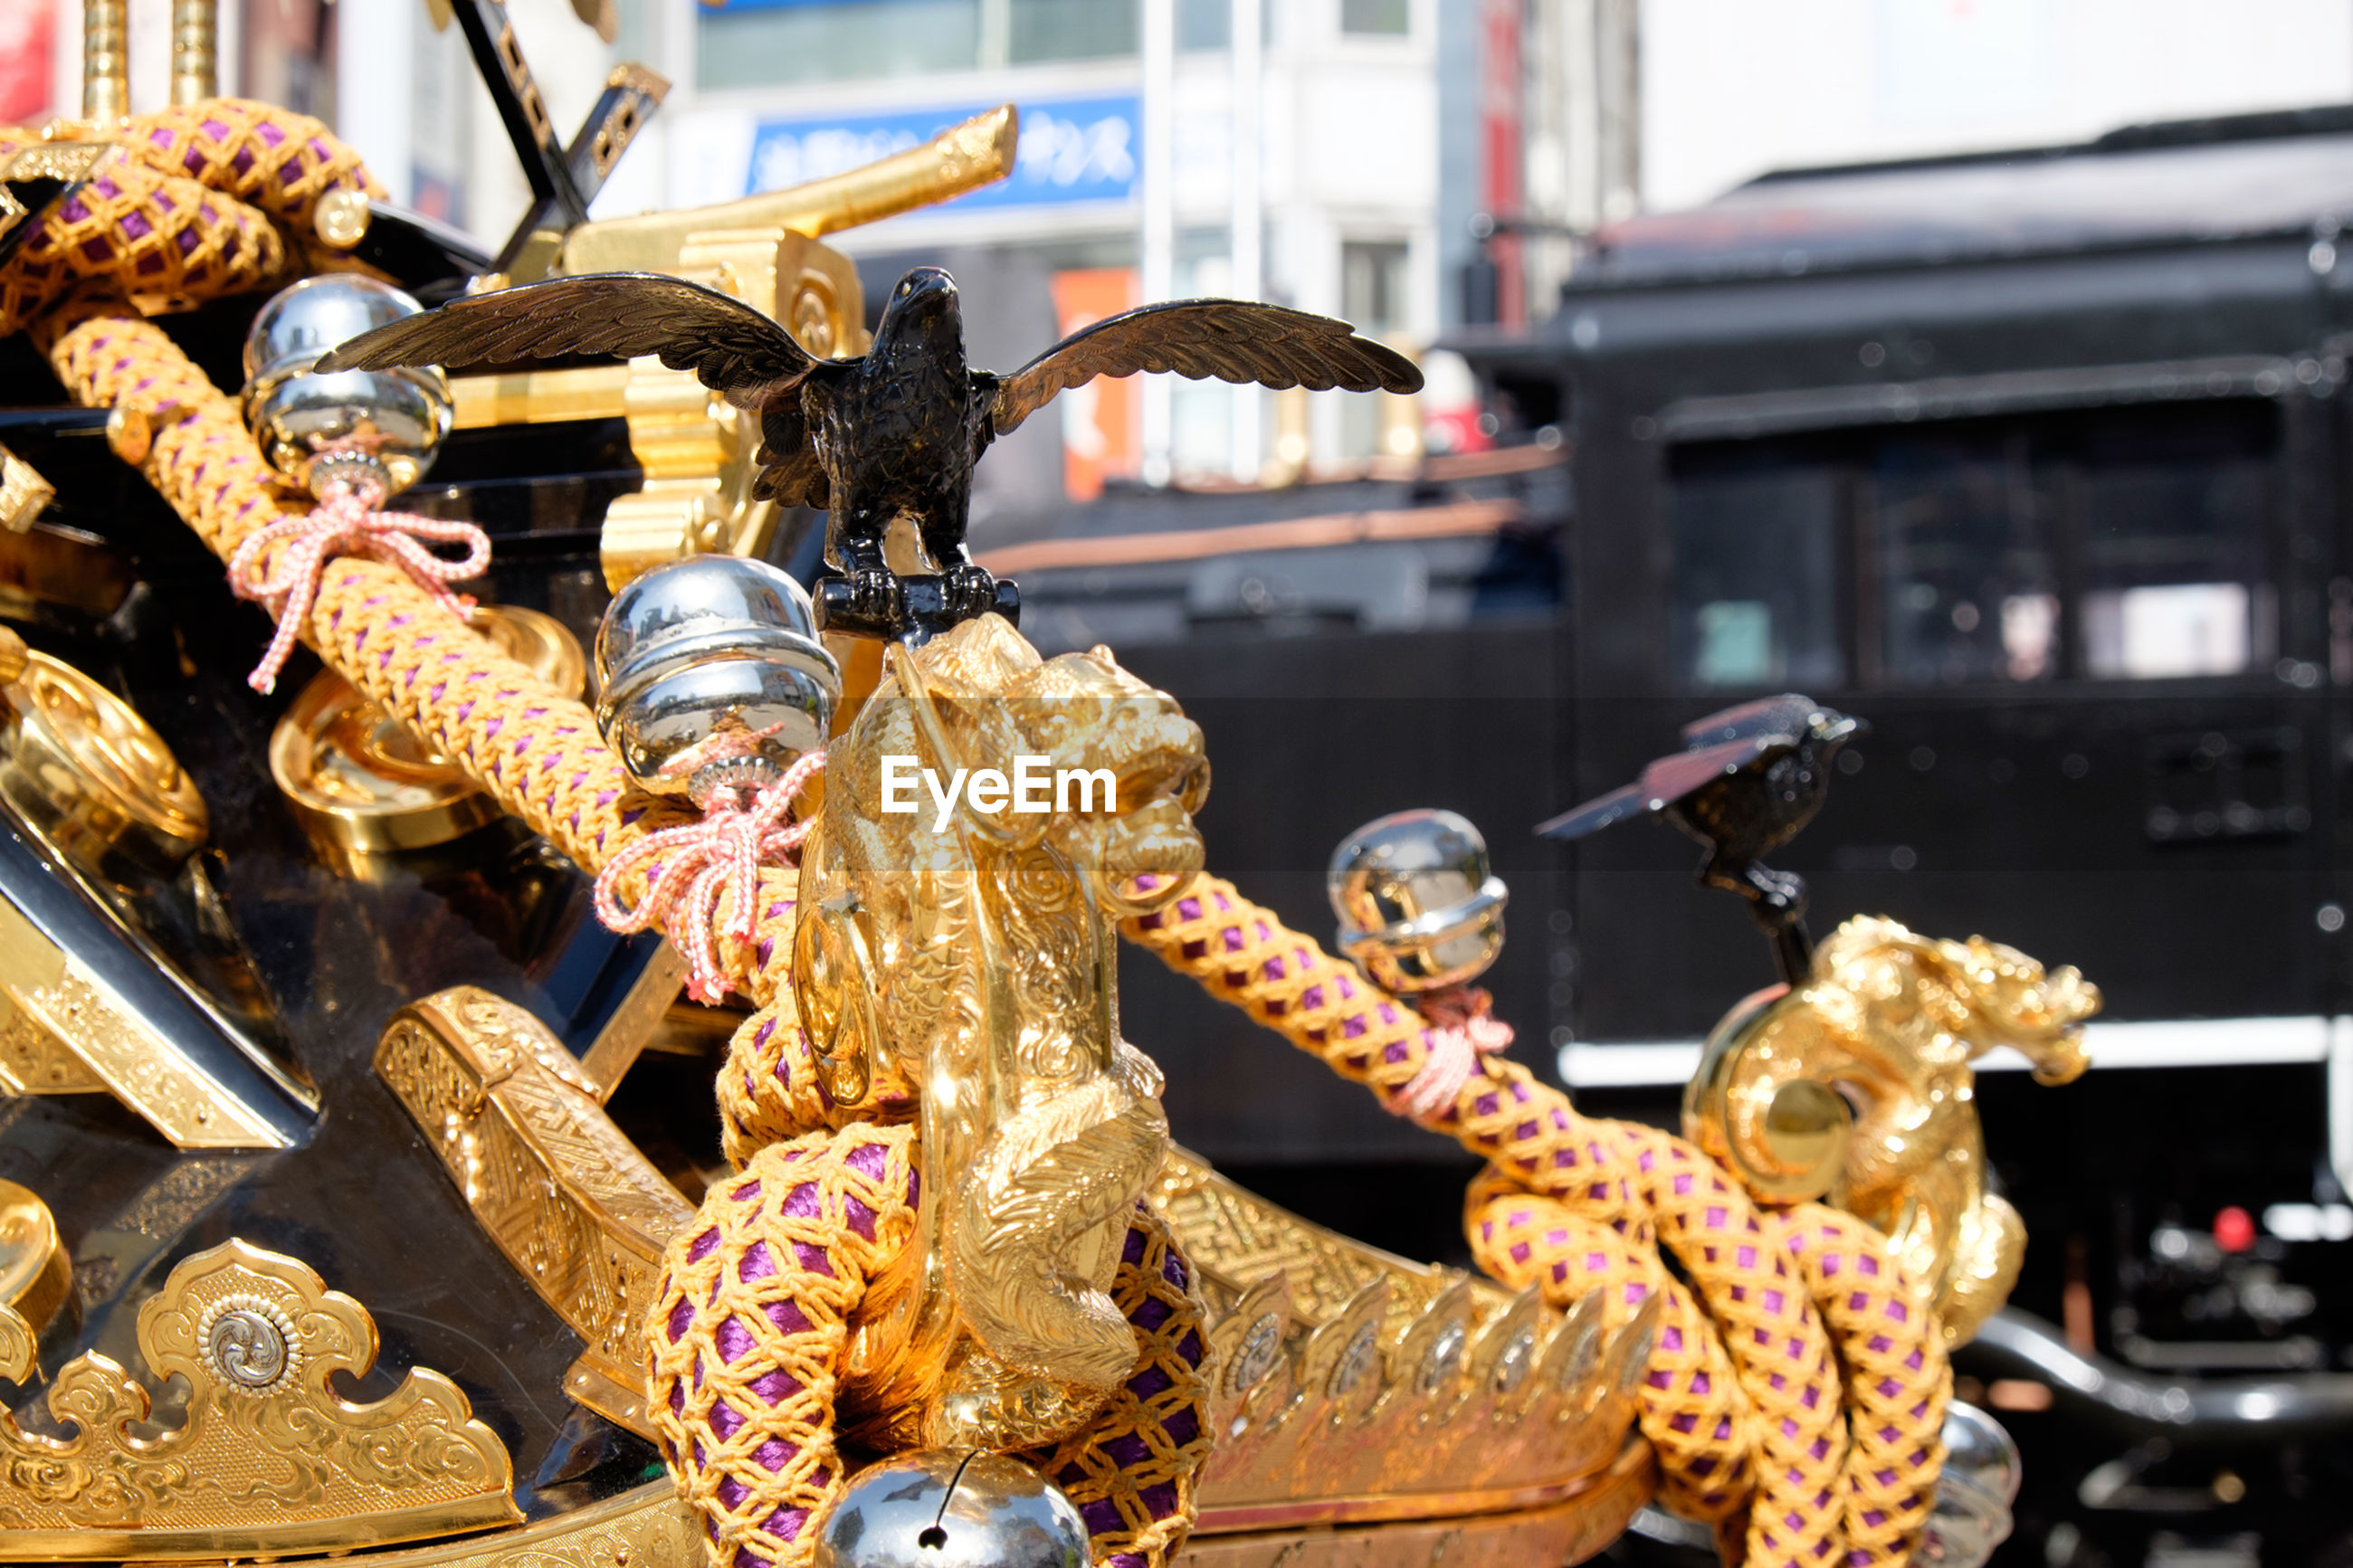 Close-up of golden statues against buildings in city